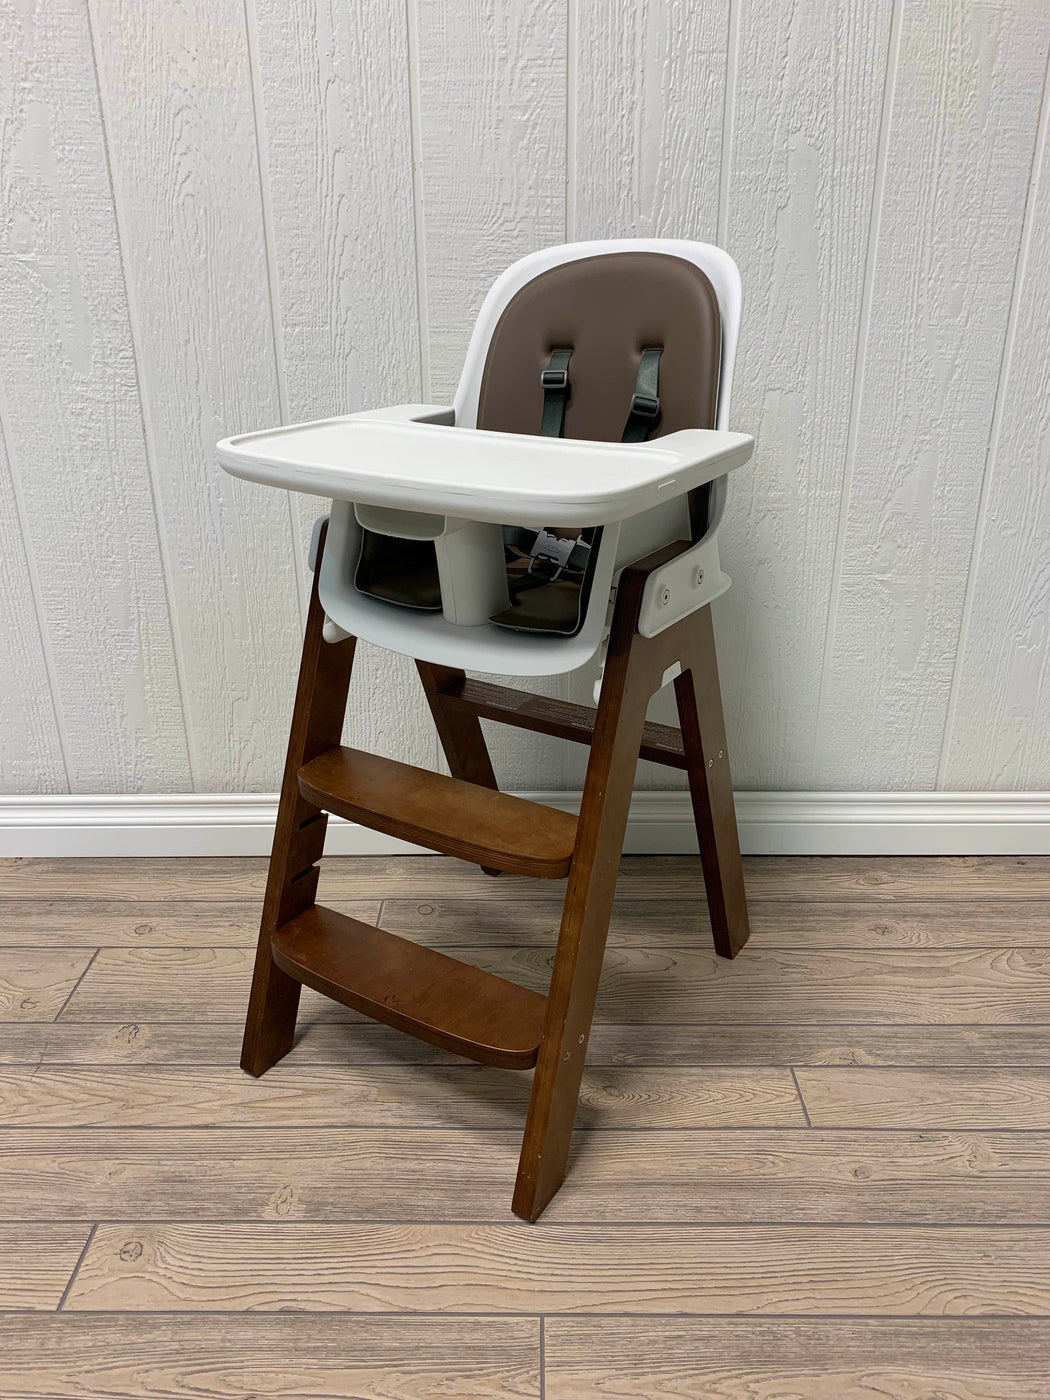 Marvelous Oxo Tot Sprout High Chair Beatyapartments Chair Design Images Beatyapartmentscom